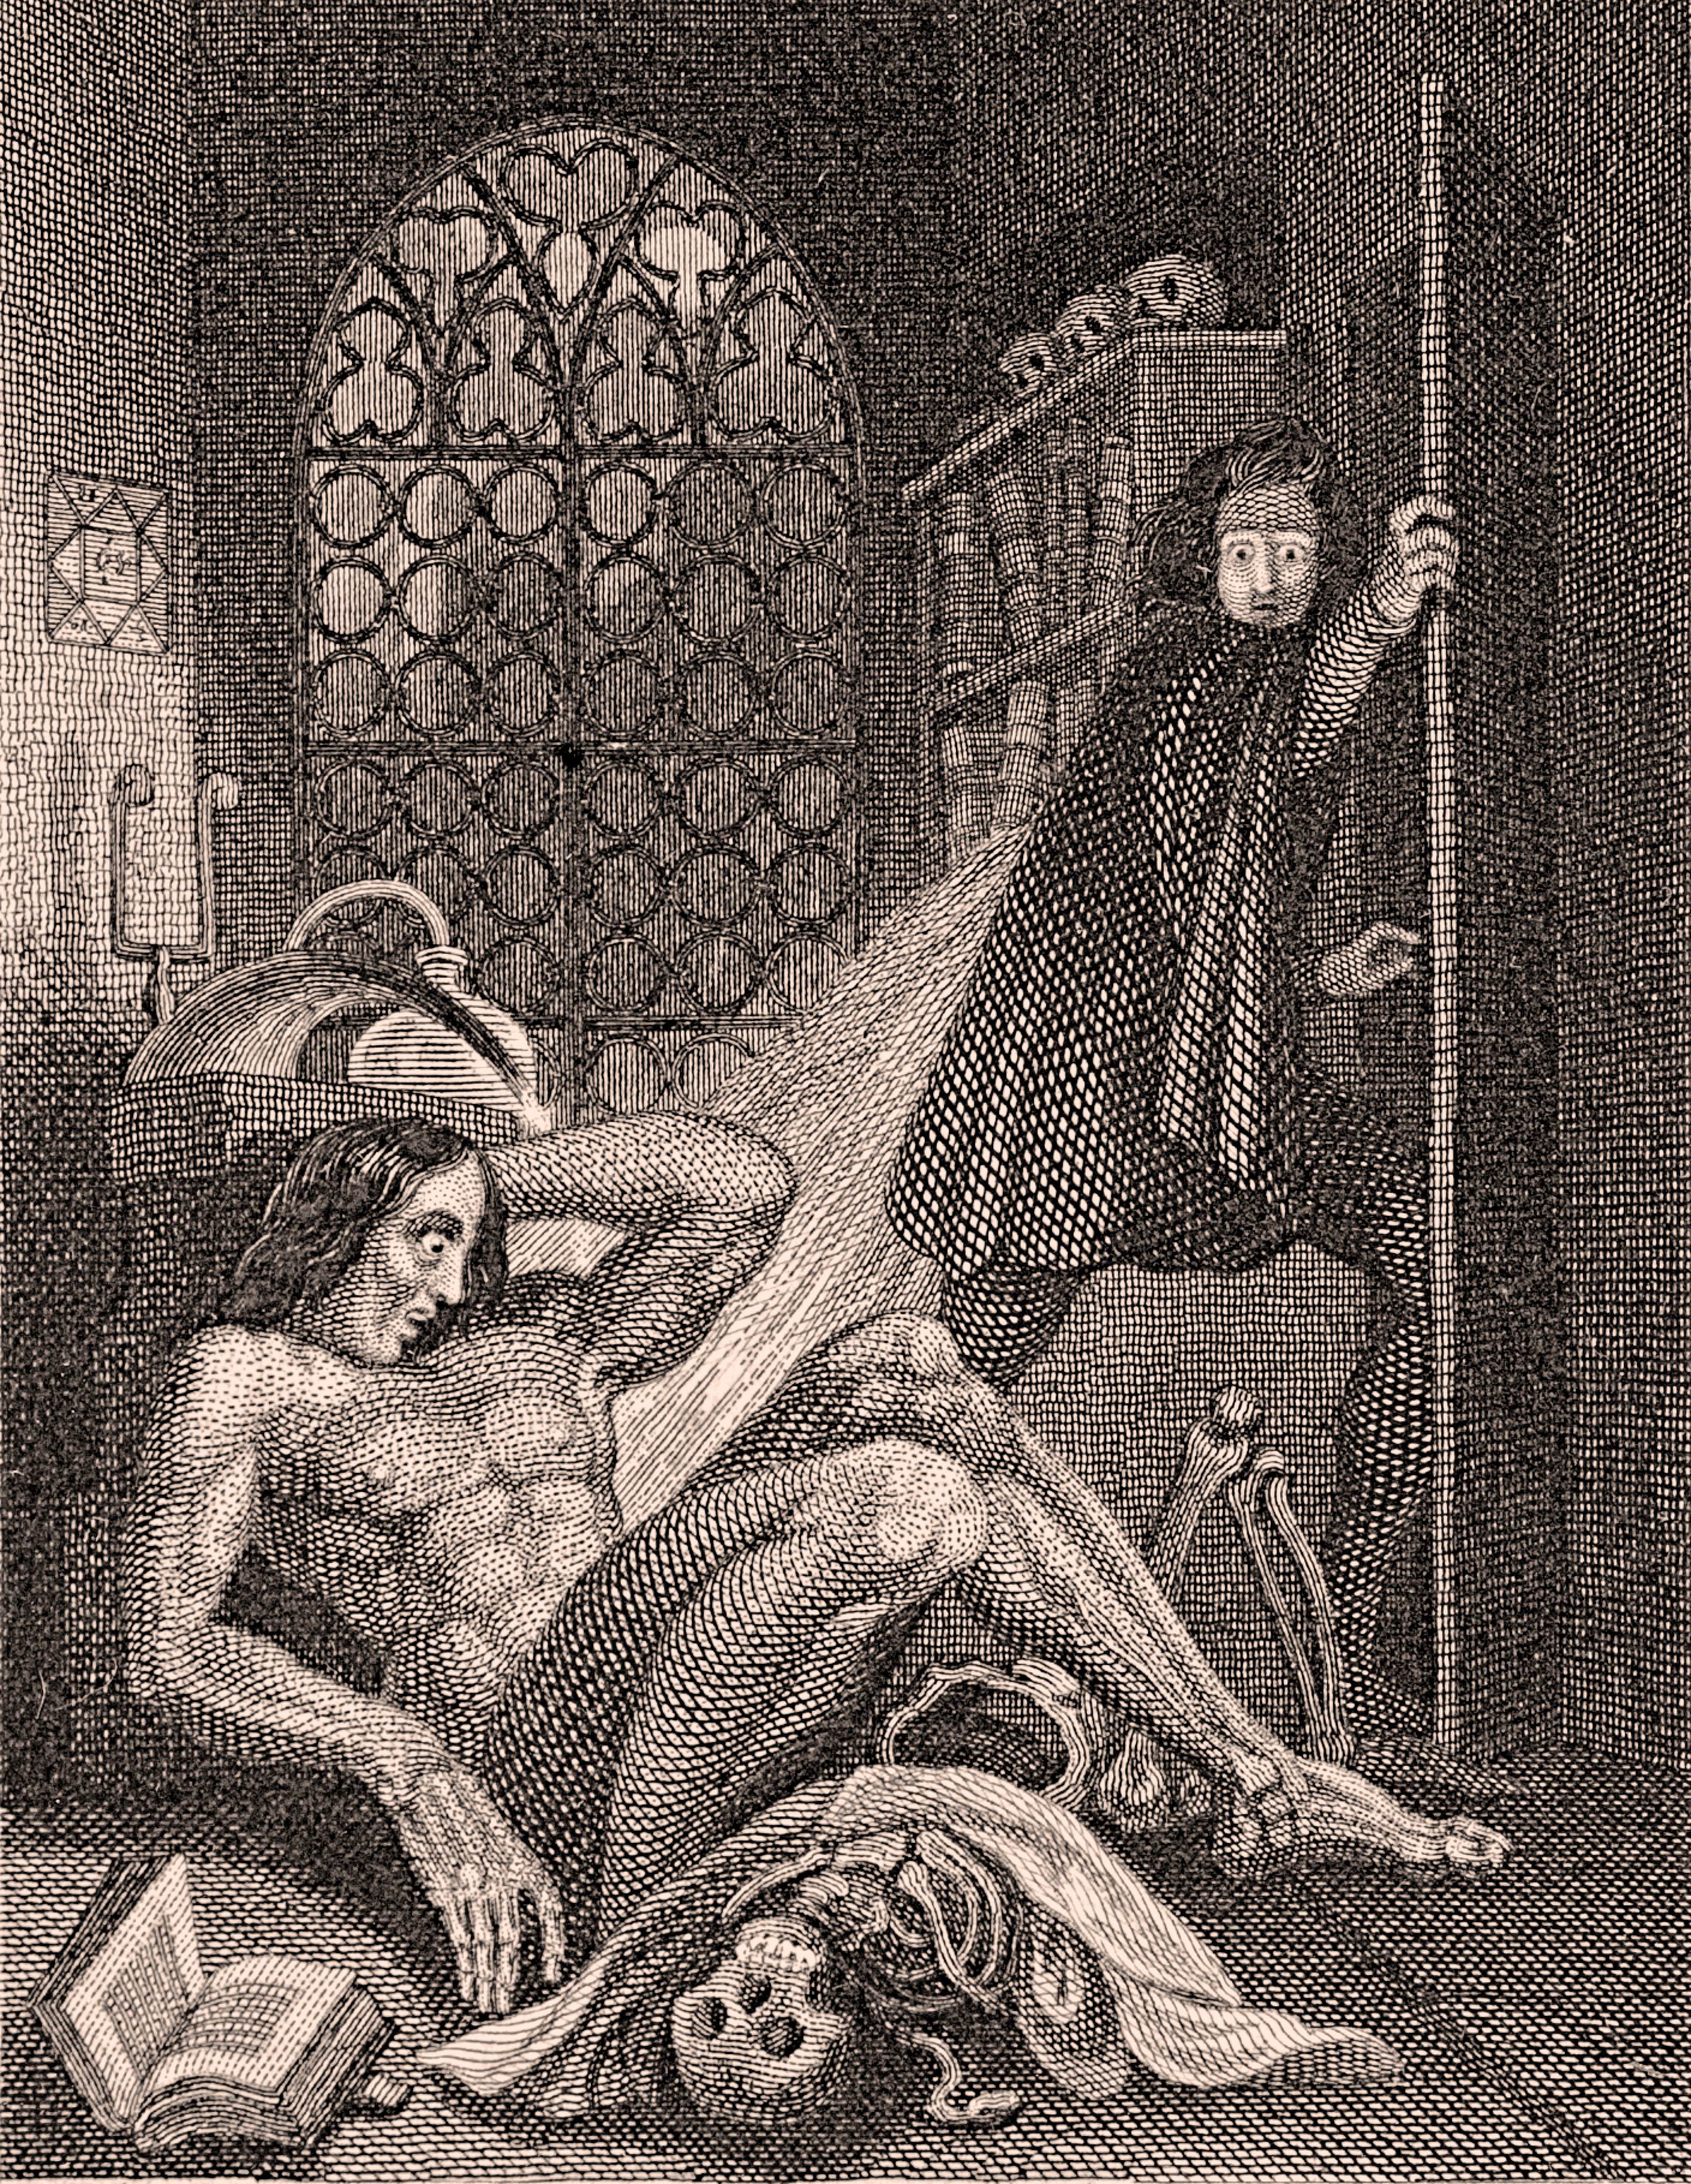 Frankenstein   Wikipedia Illustration by Theodor von Holst from the frontispiece of the 1831 edition   Frankenstein